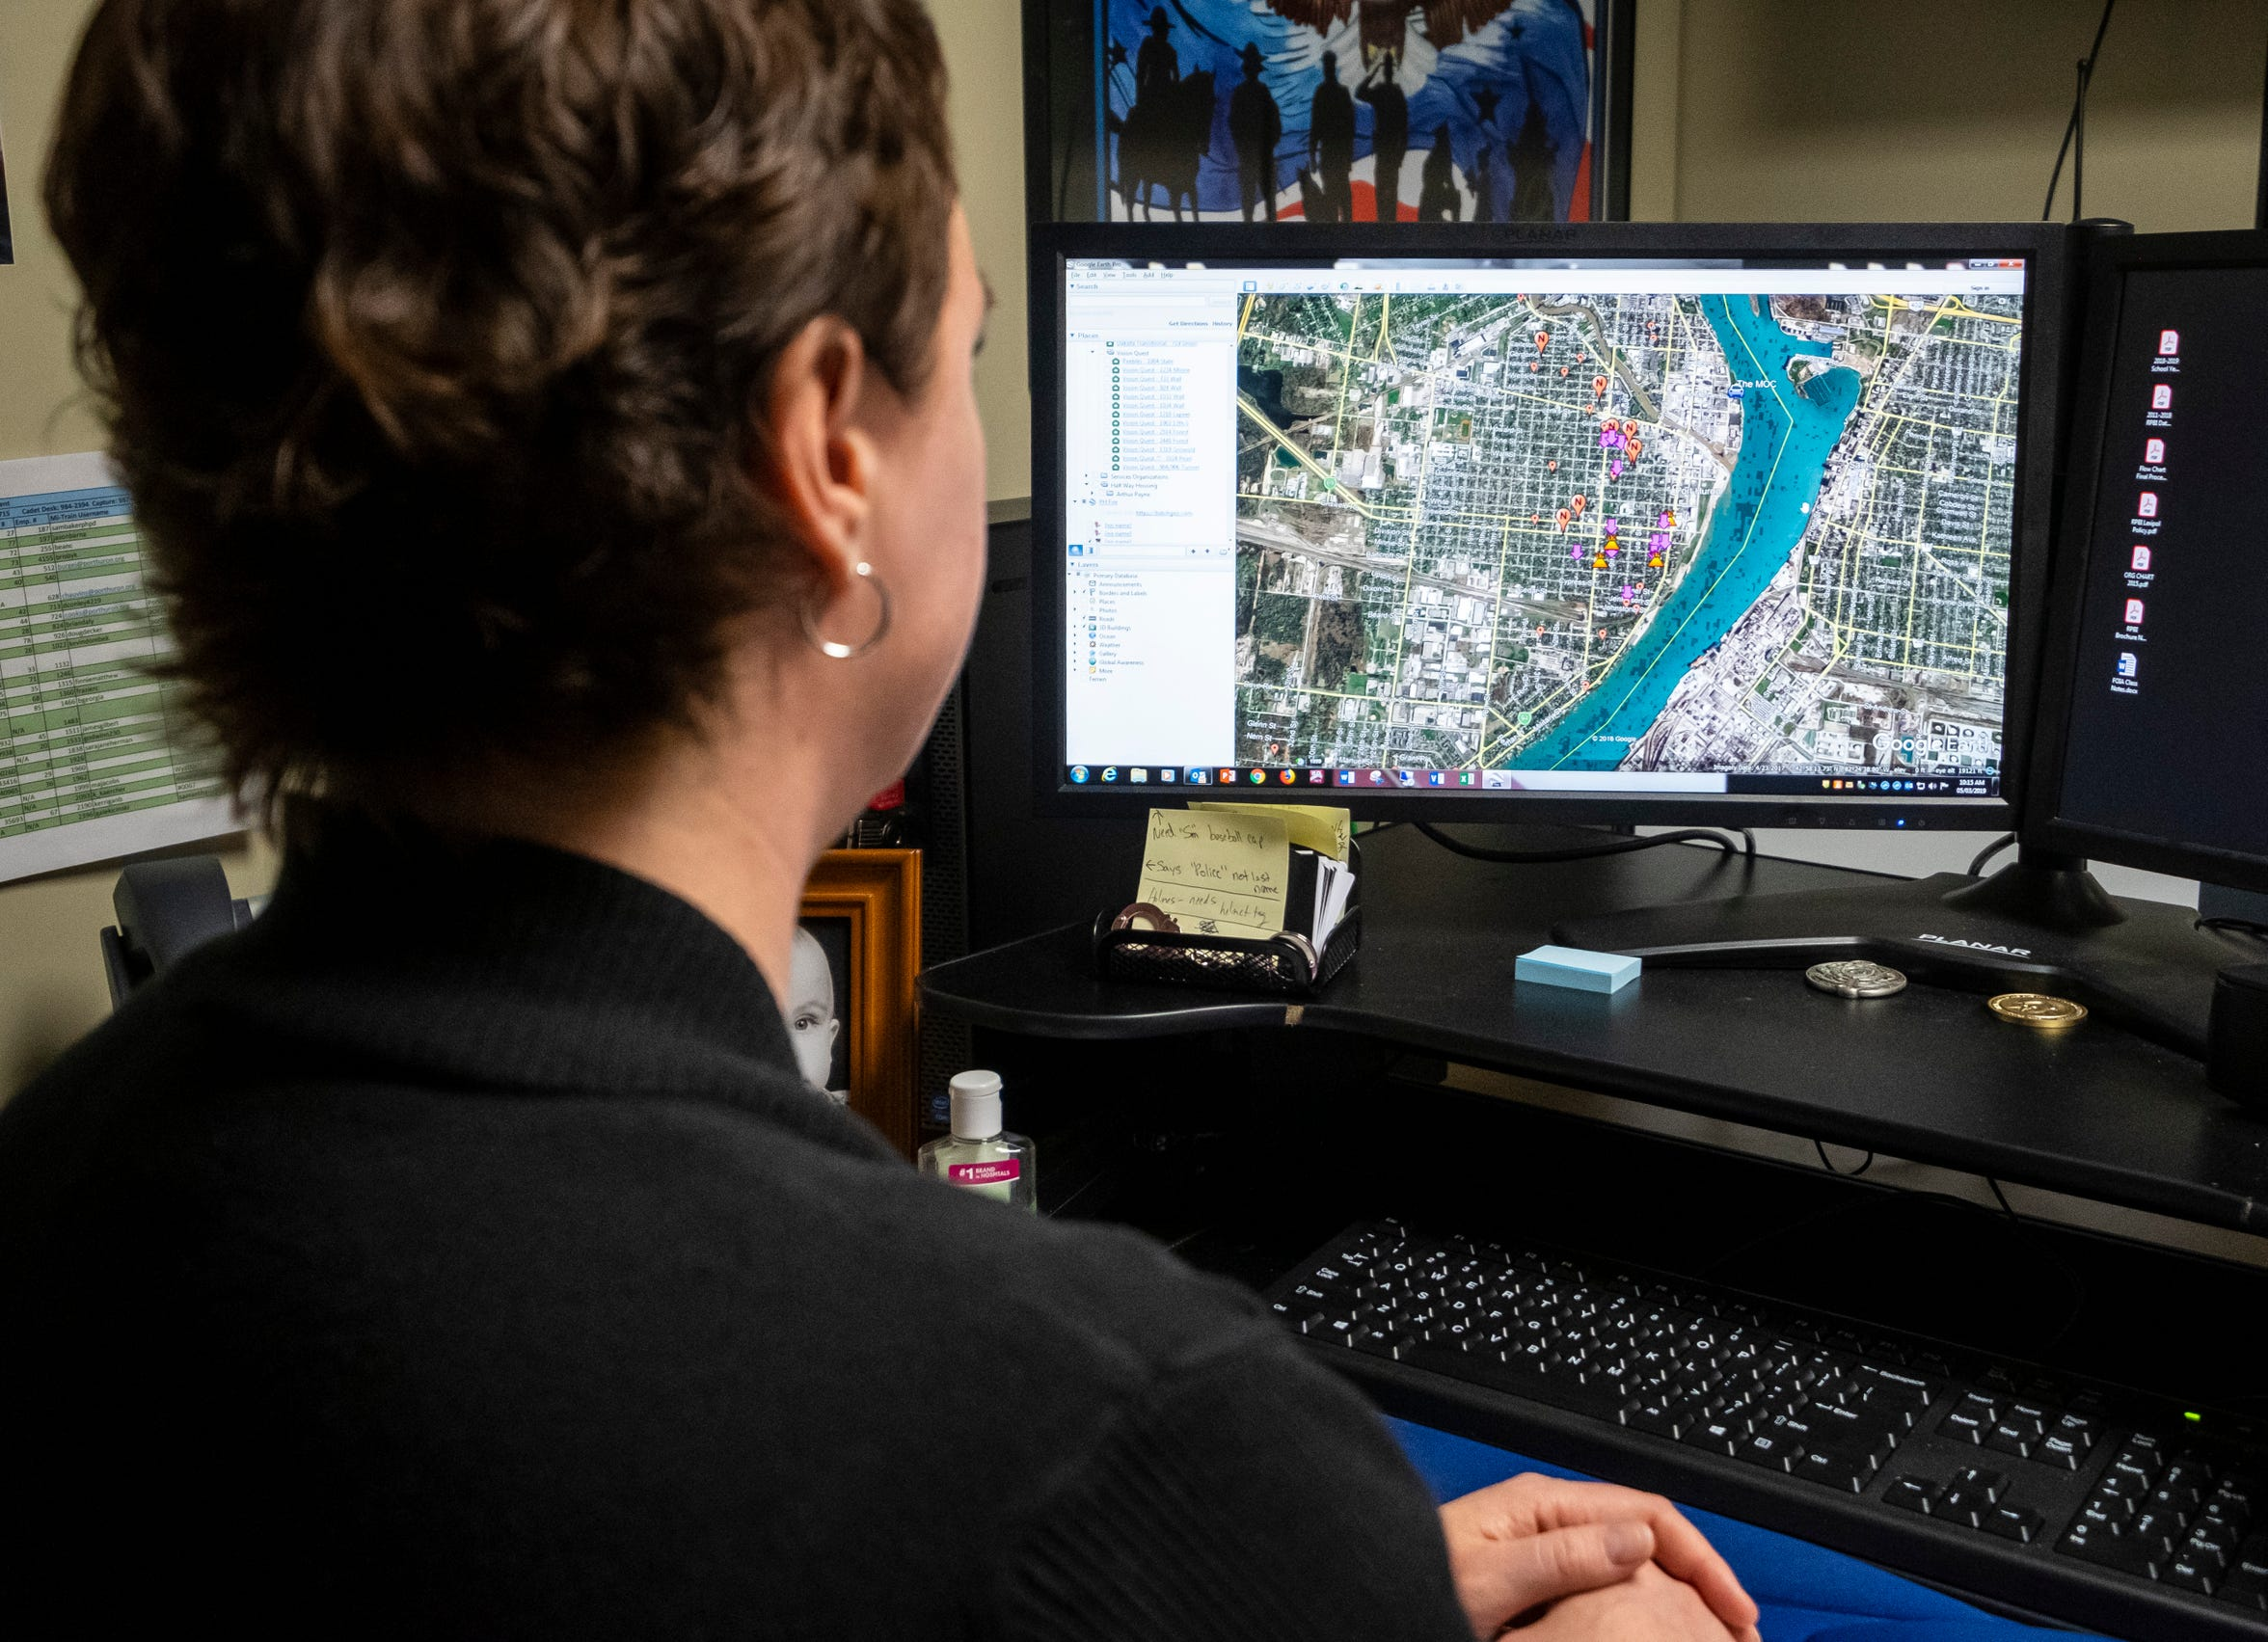 Port Huron Police Department Crime Analyst Melissa Jacobs uses software that shows the locations of different crimes Friday, May 3, 2019 in her office in the Municipal Office Center.